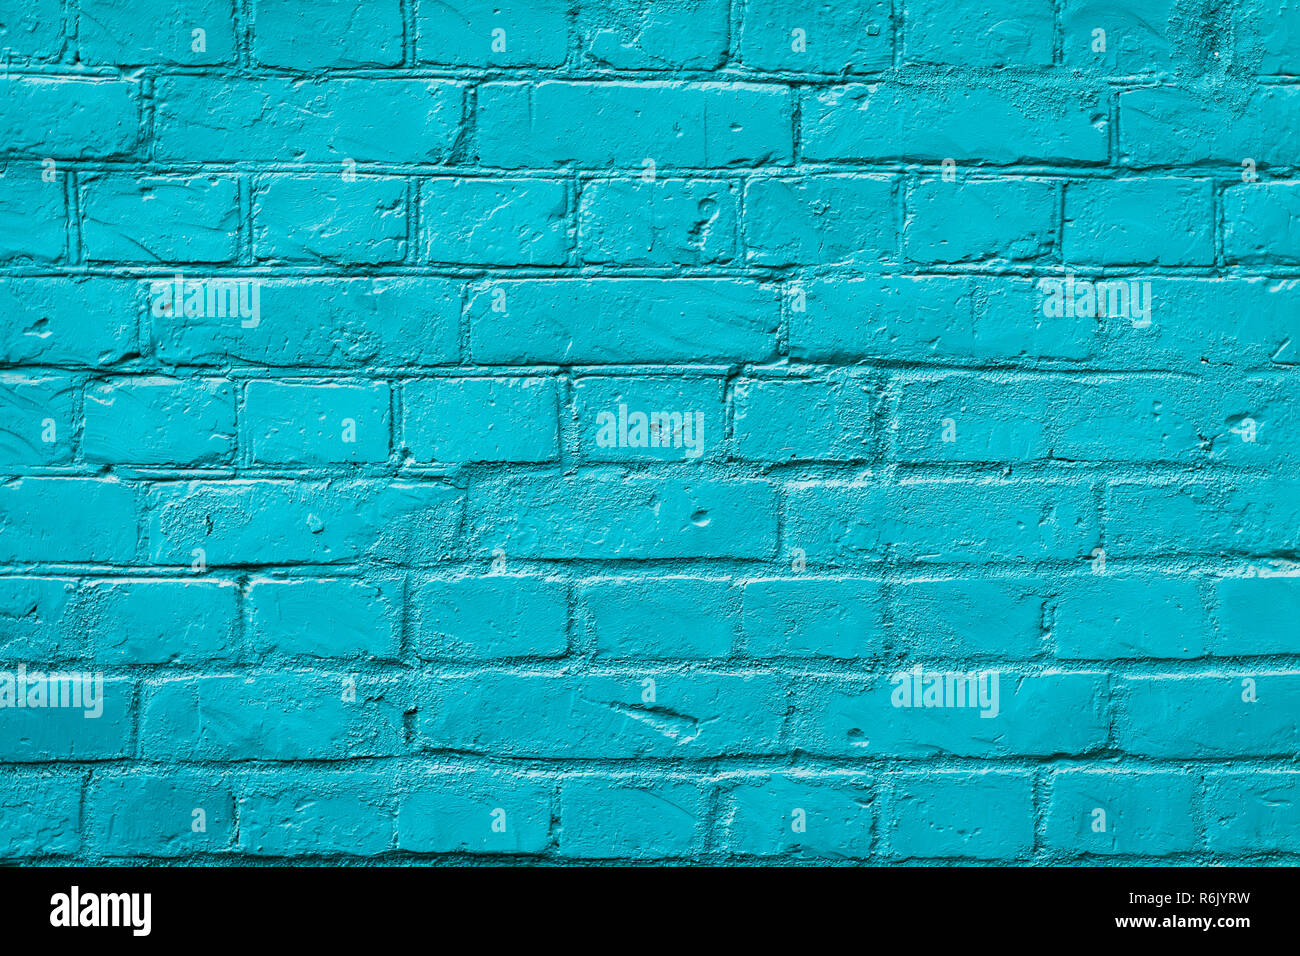 Painted brick wall, blue color, urban background. Horizontal texture. For abstract backdrop, pattern, wallpaper or banner design Stock Photo